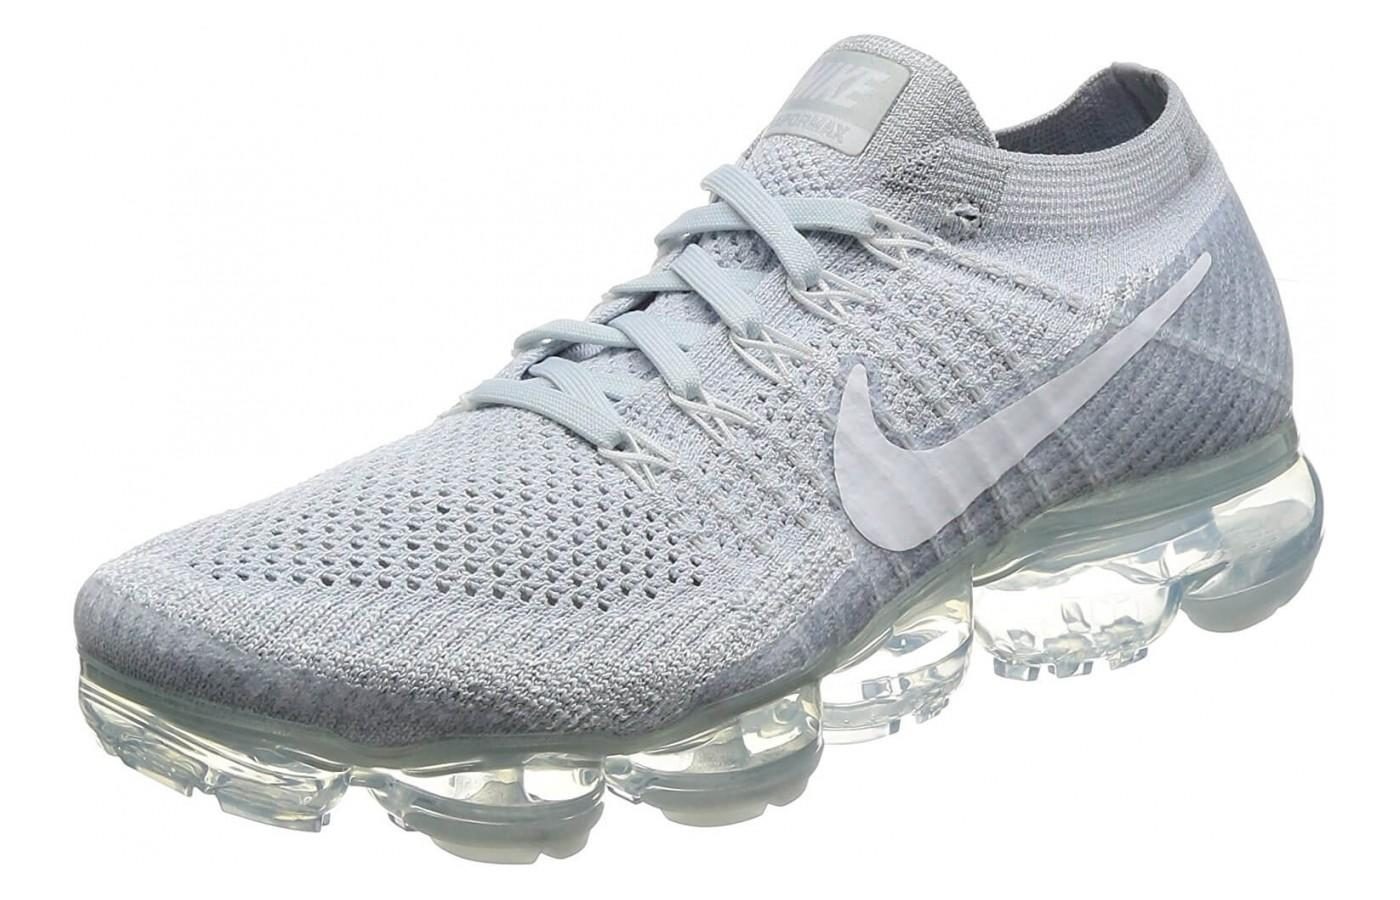 e40e386431c Nike Air Vapormax Flyknit. The platinum coloring and unique design help  this shoe stand out.